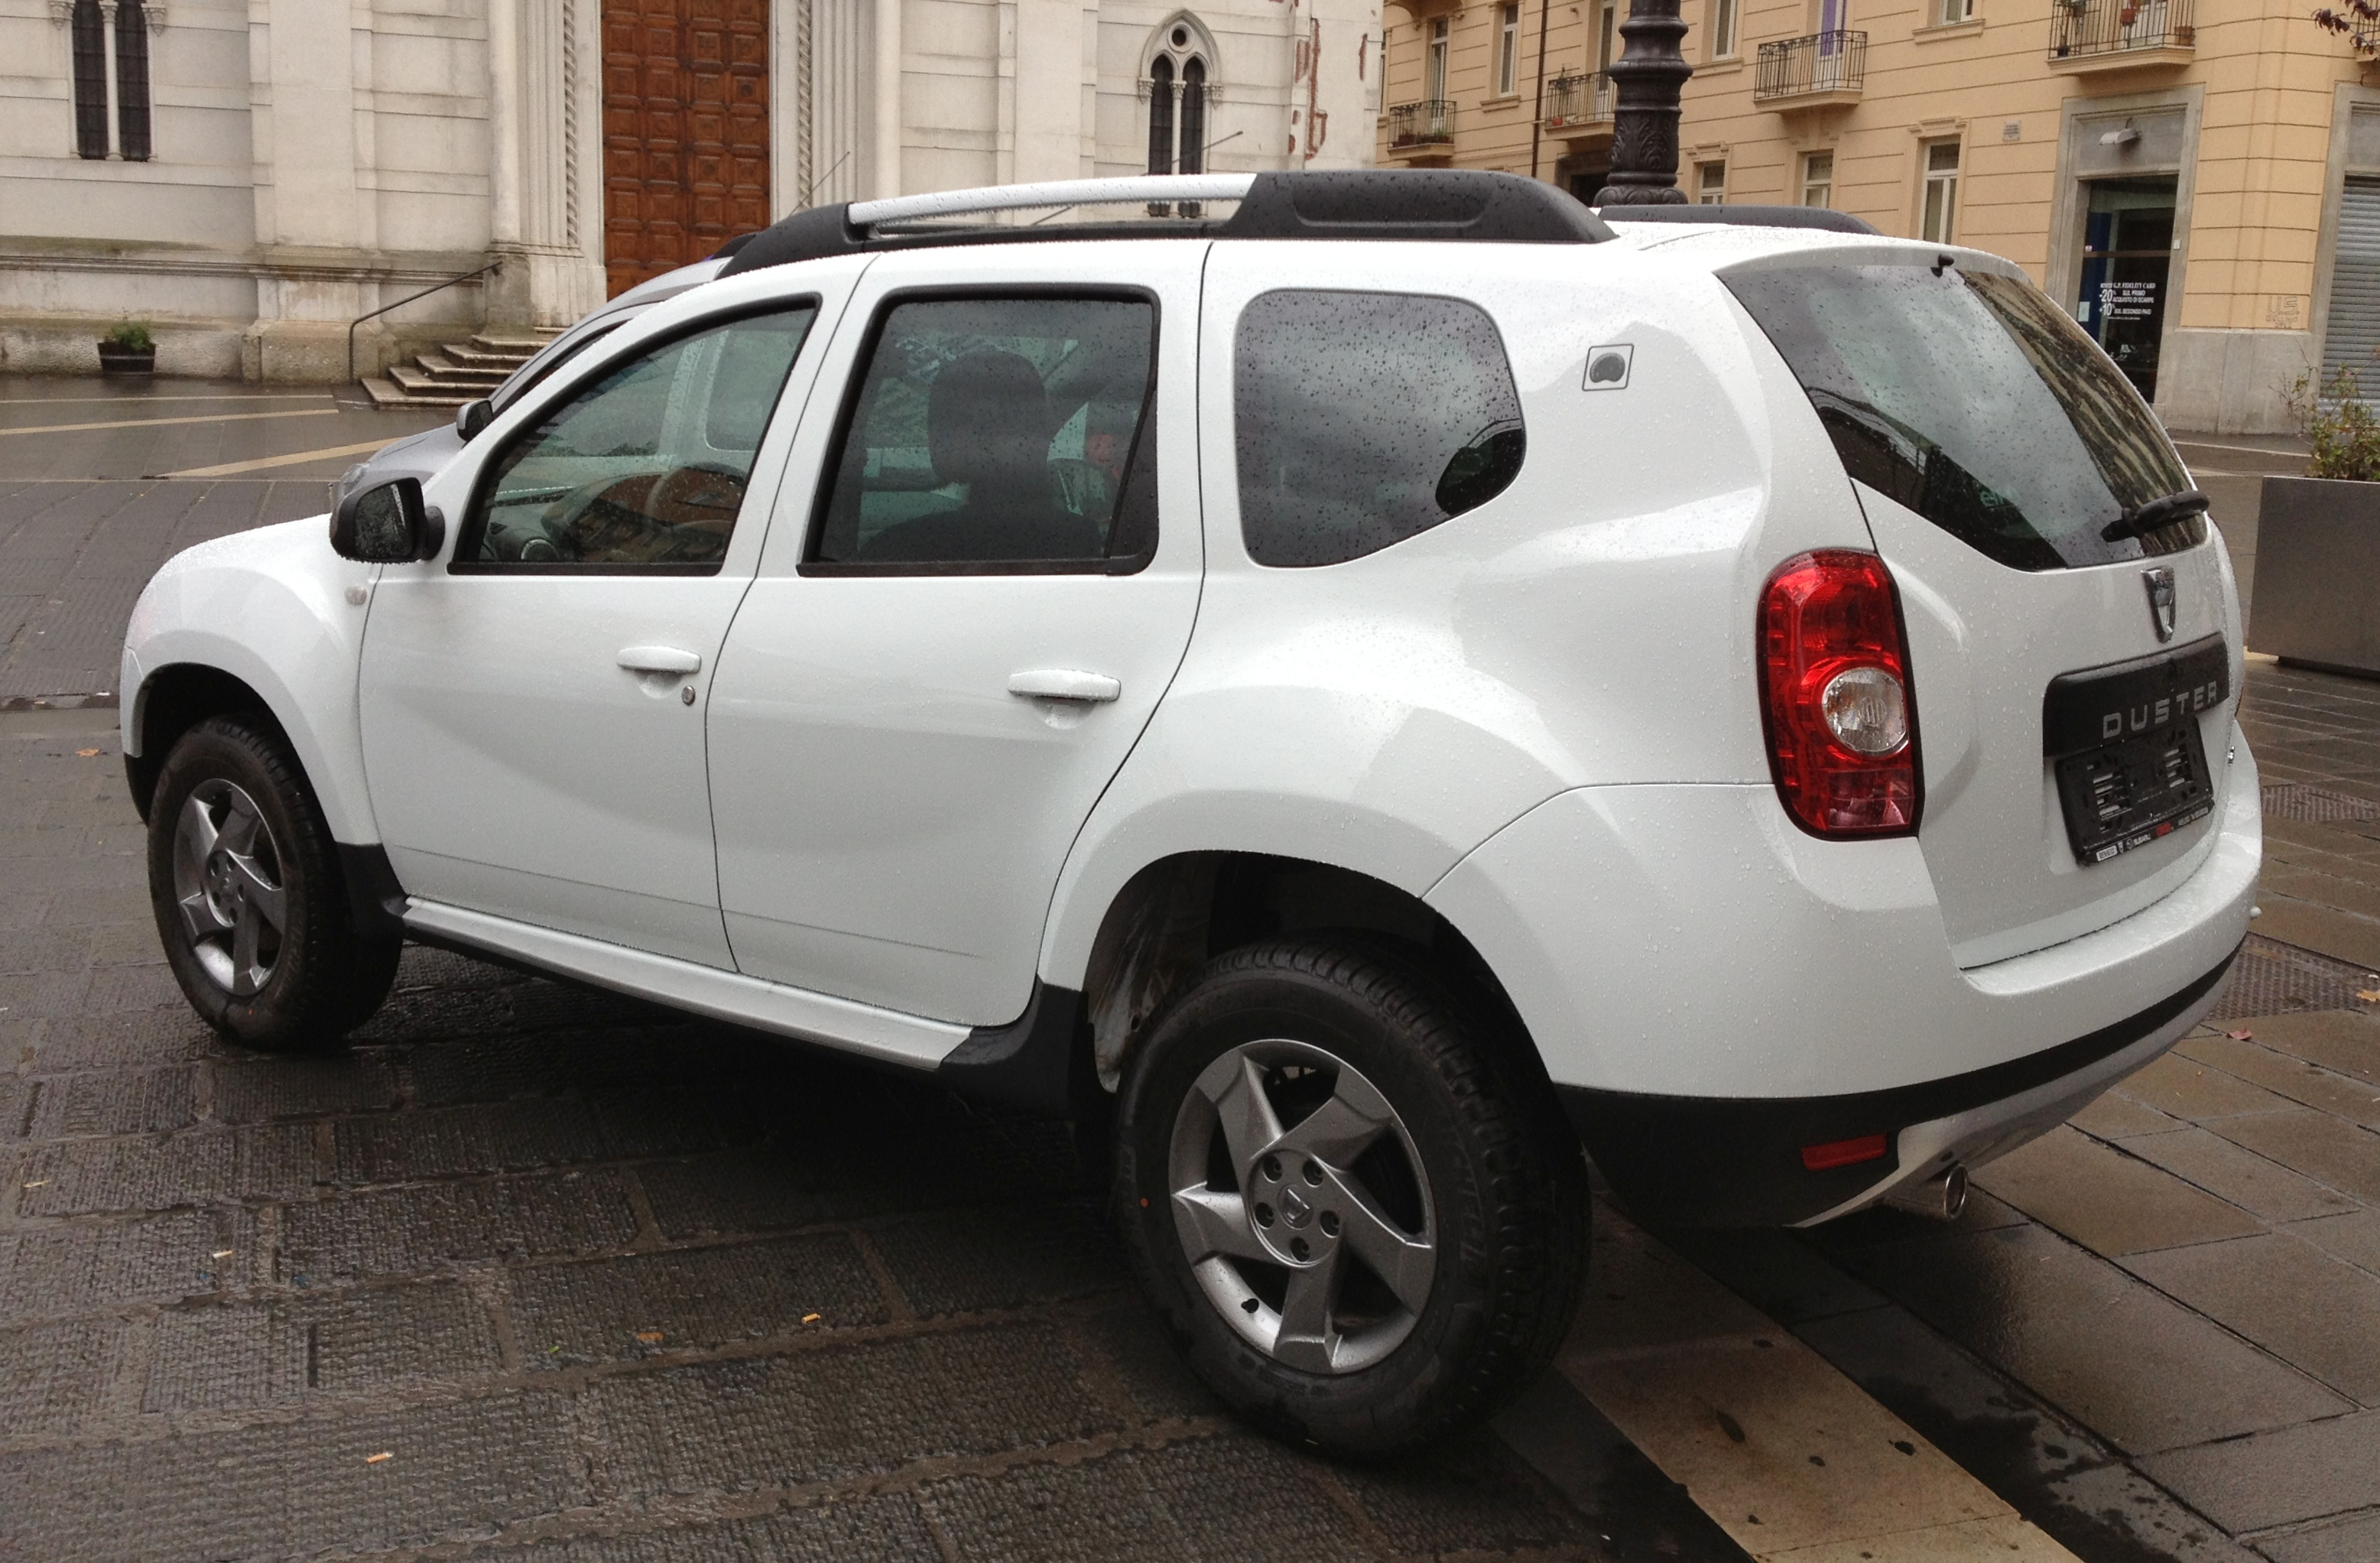 file 2012 dacia duster 1 5 dci rear jpg wikimedia commons. Black Bedroom Furniture Sets. Home Design Ideas